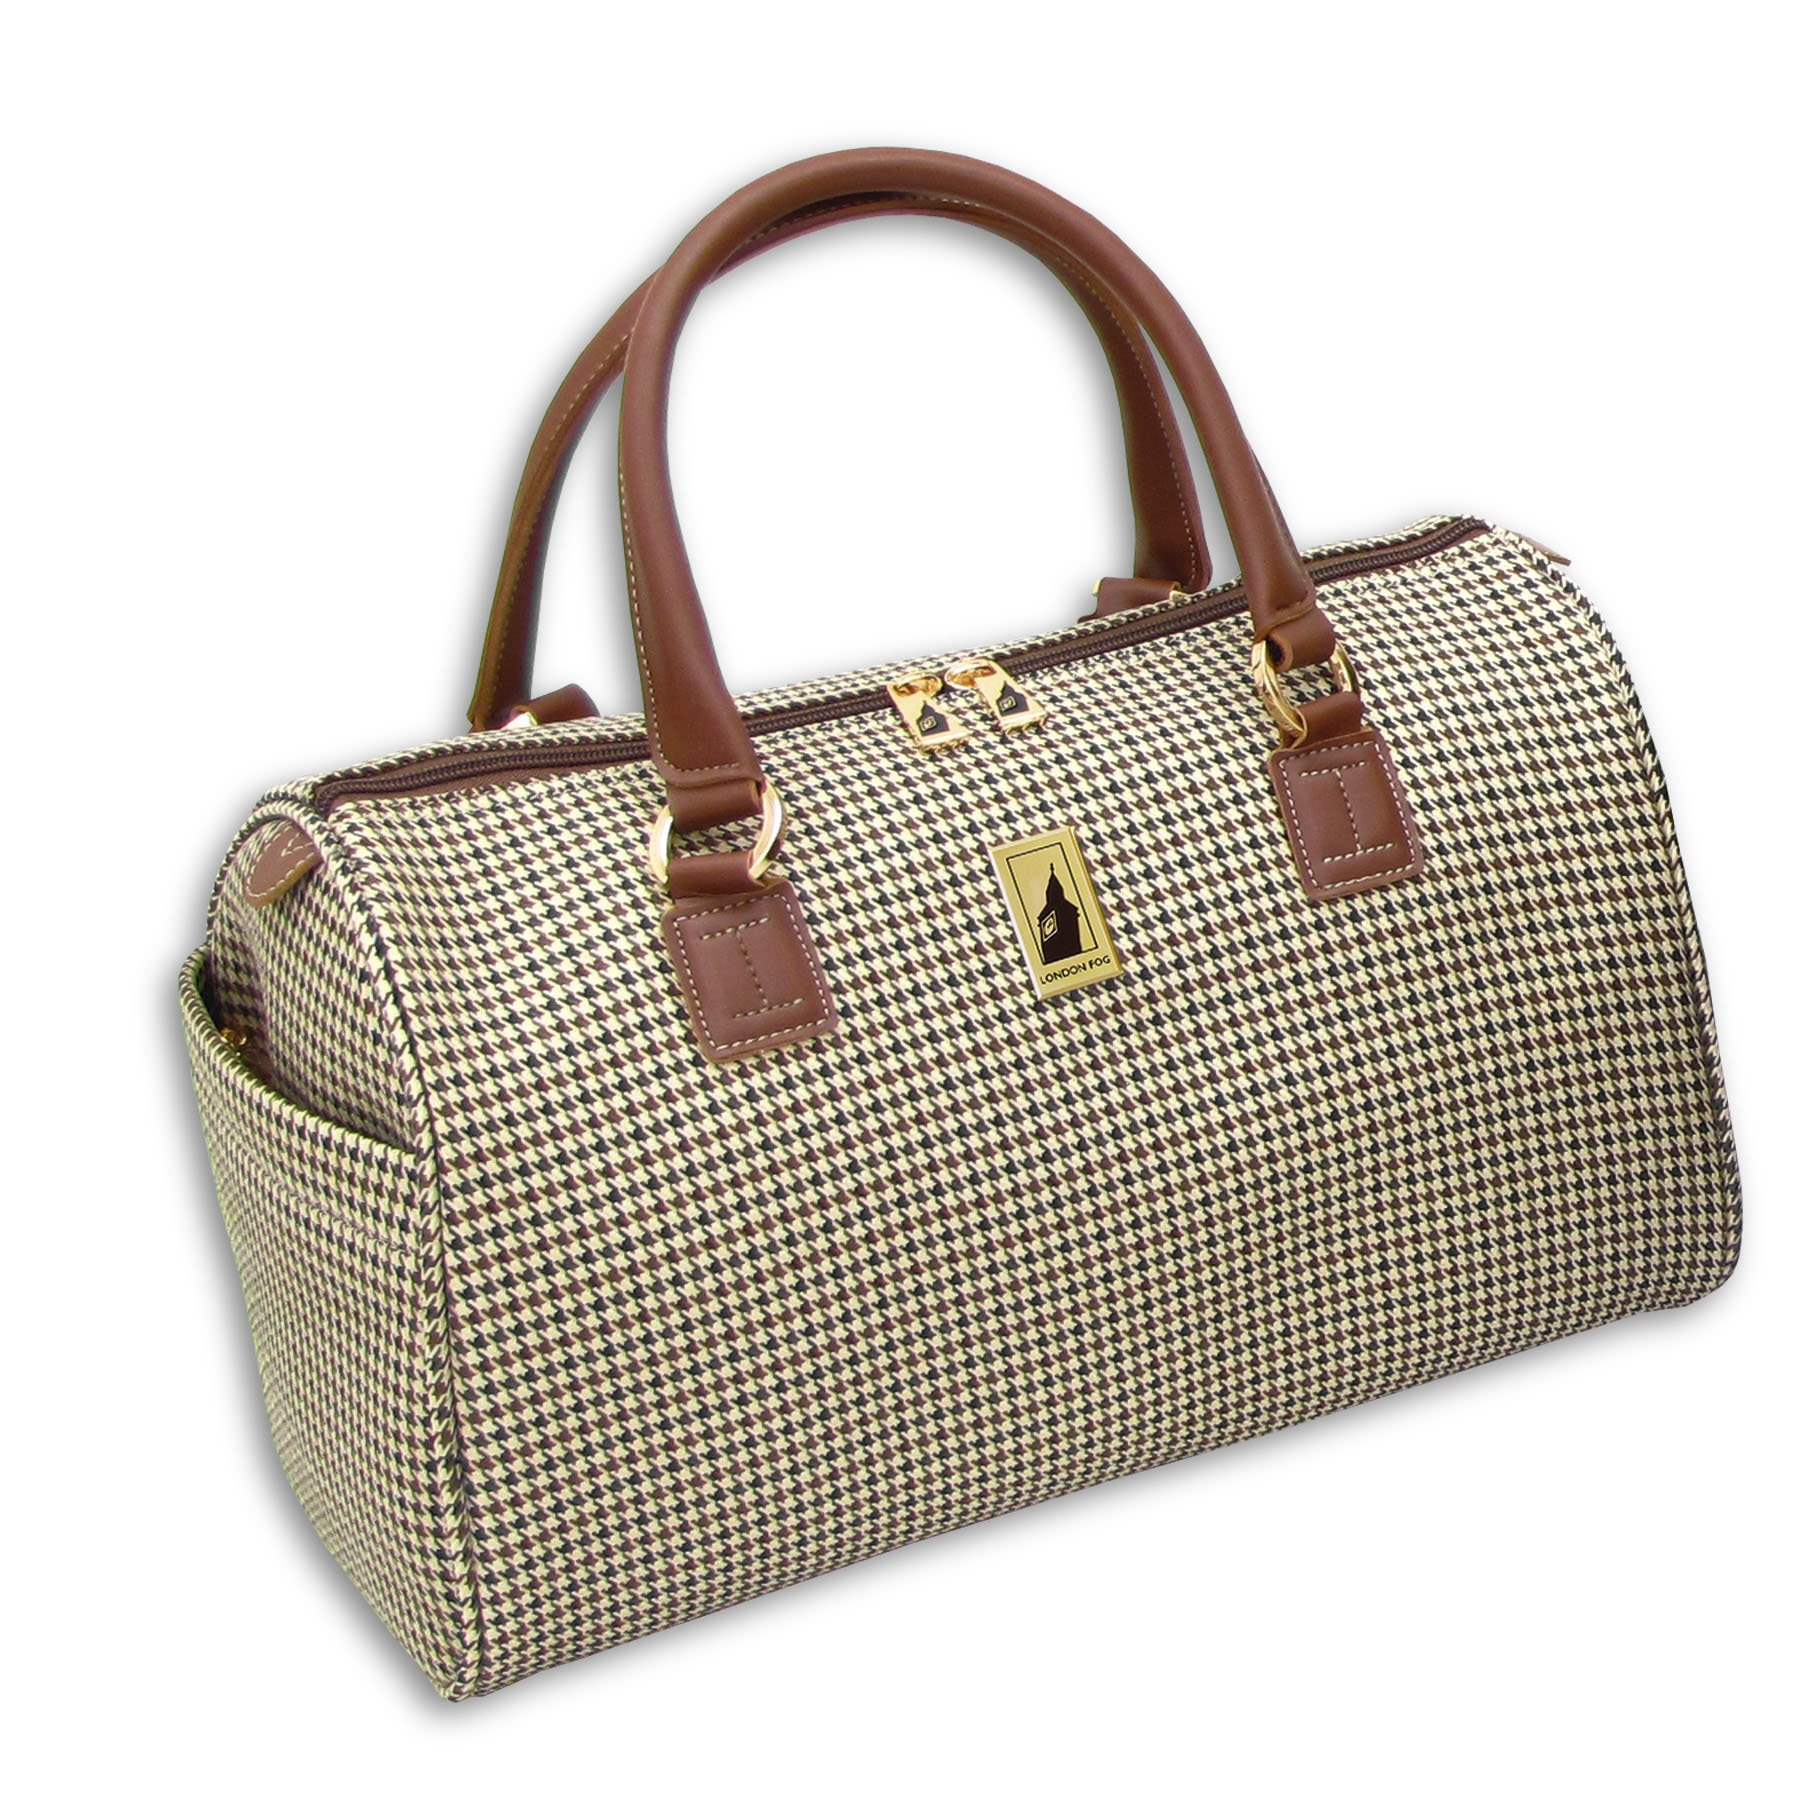 London Fog Luggage Chelsea 16 Inch Satchel Tote, Olive Plaid, One Size